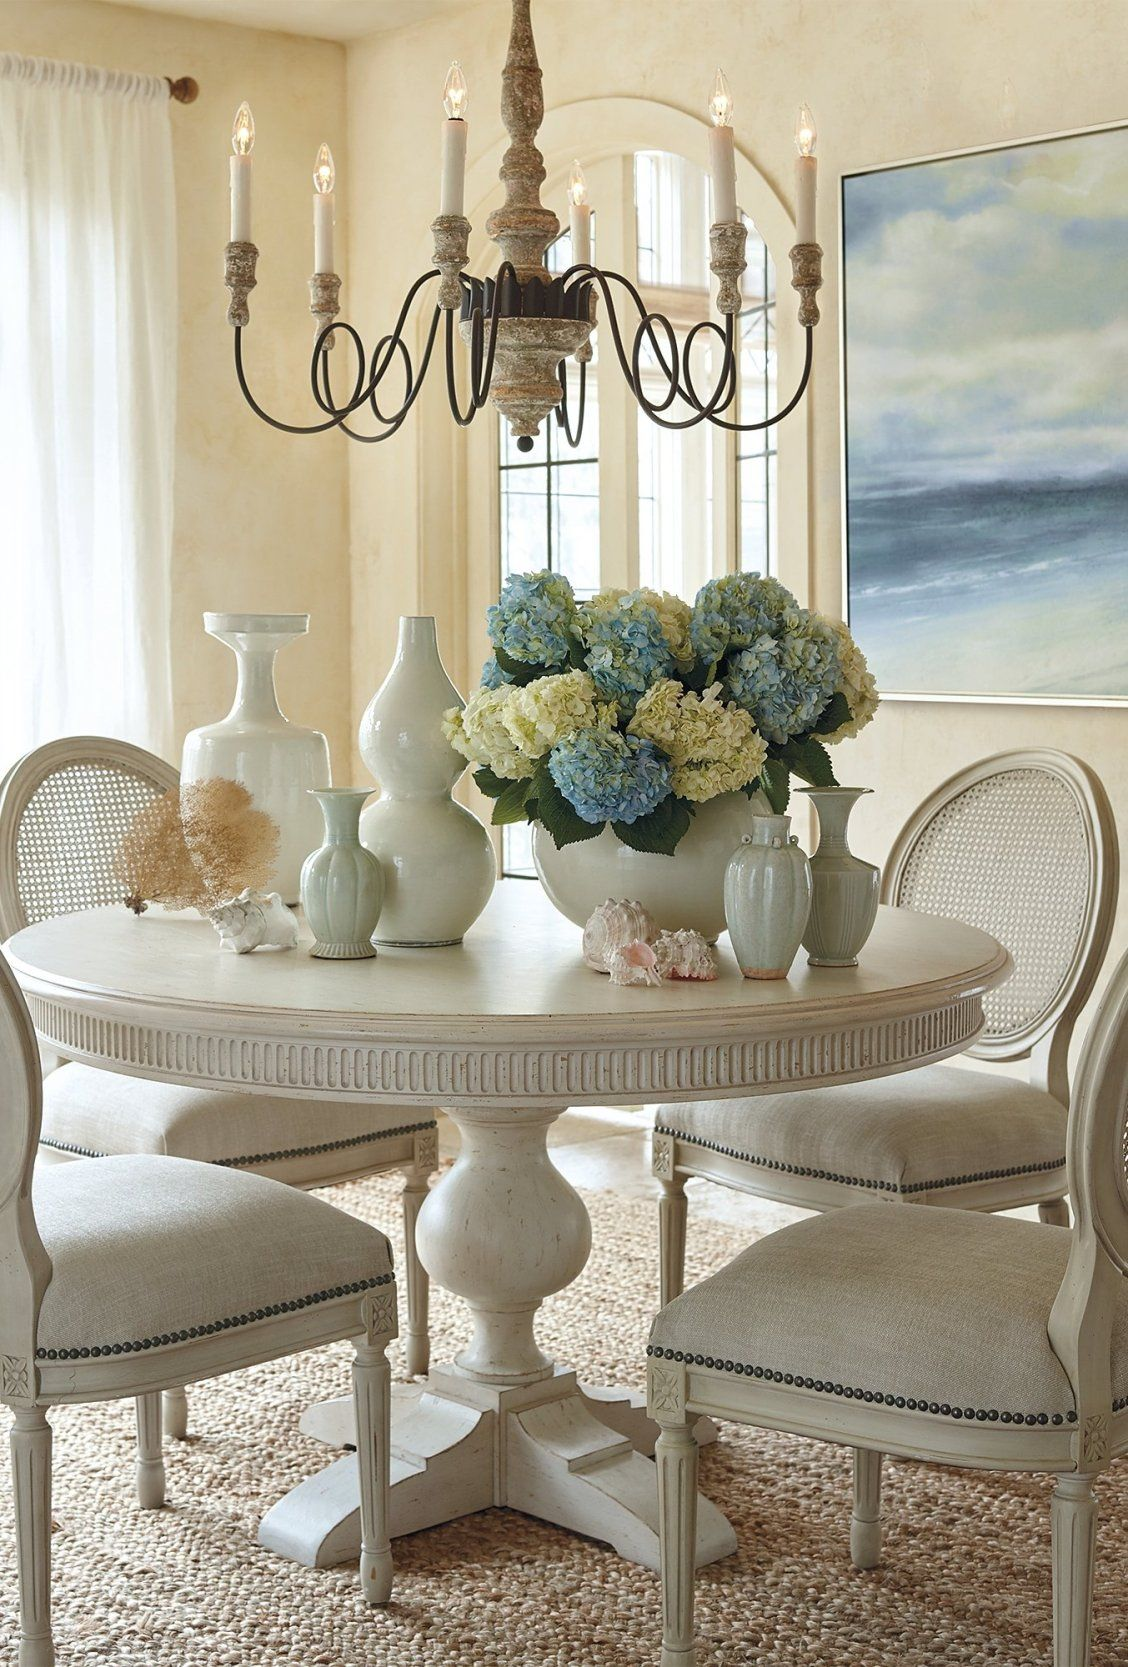 Frederick Pedestal Dining Table Frontgate Round Dining Room Table Dining Room Table Centerpieces Pedestal Dining Table